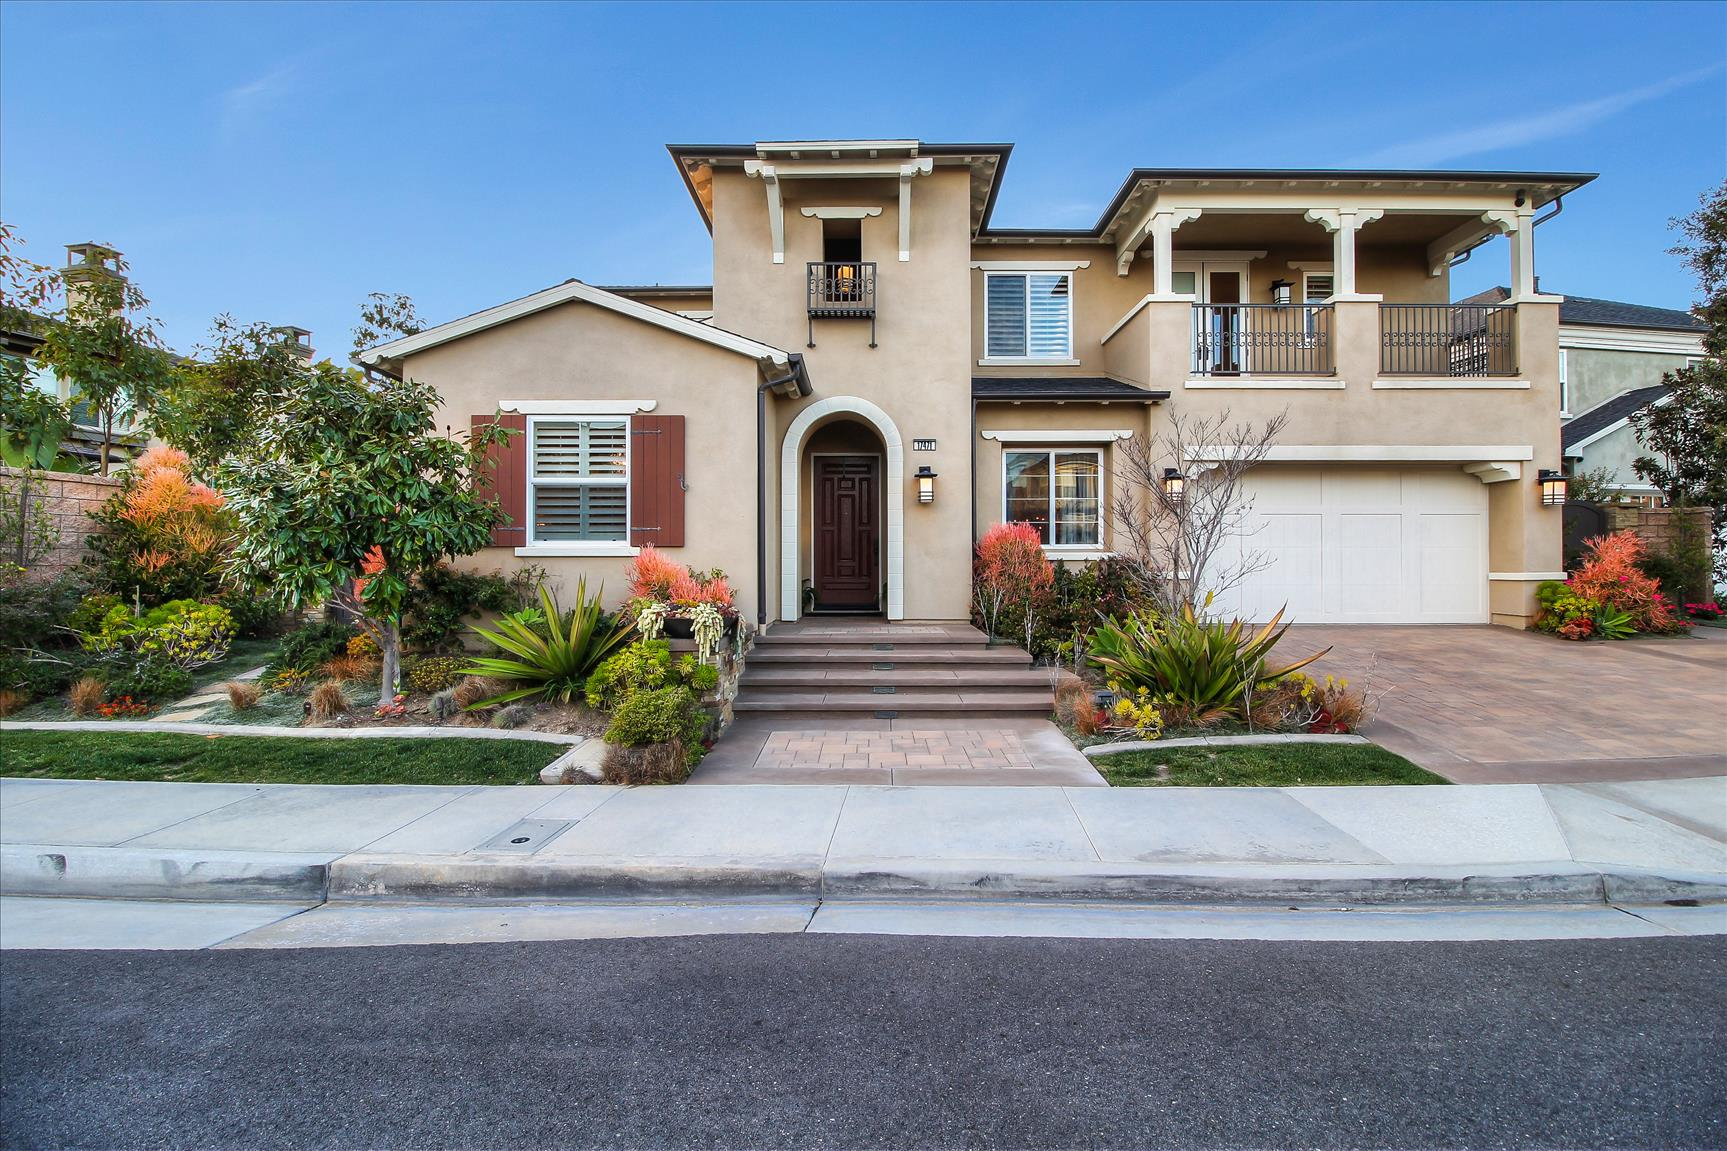 17471 Kennebunk Ln, Huntington Beach, CA  926496.jpg